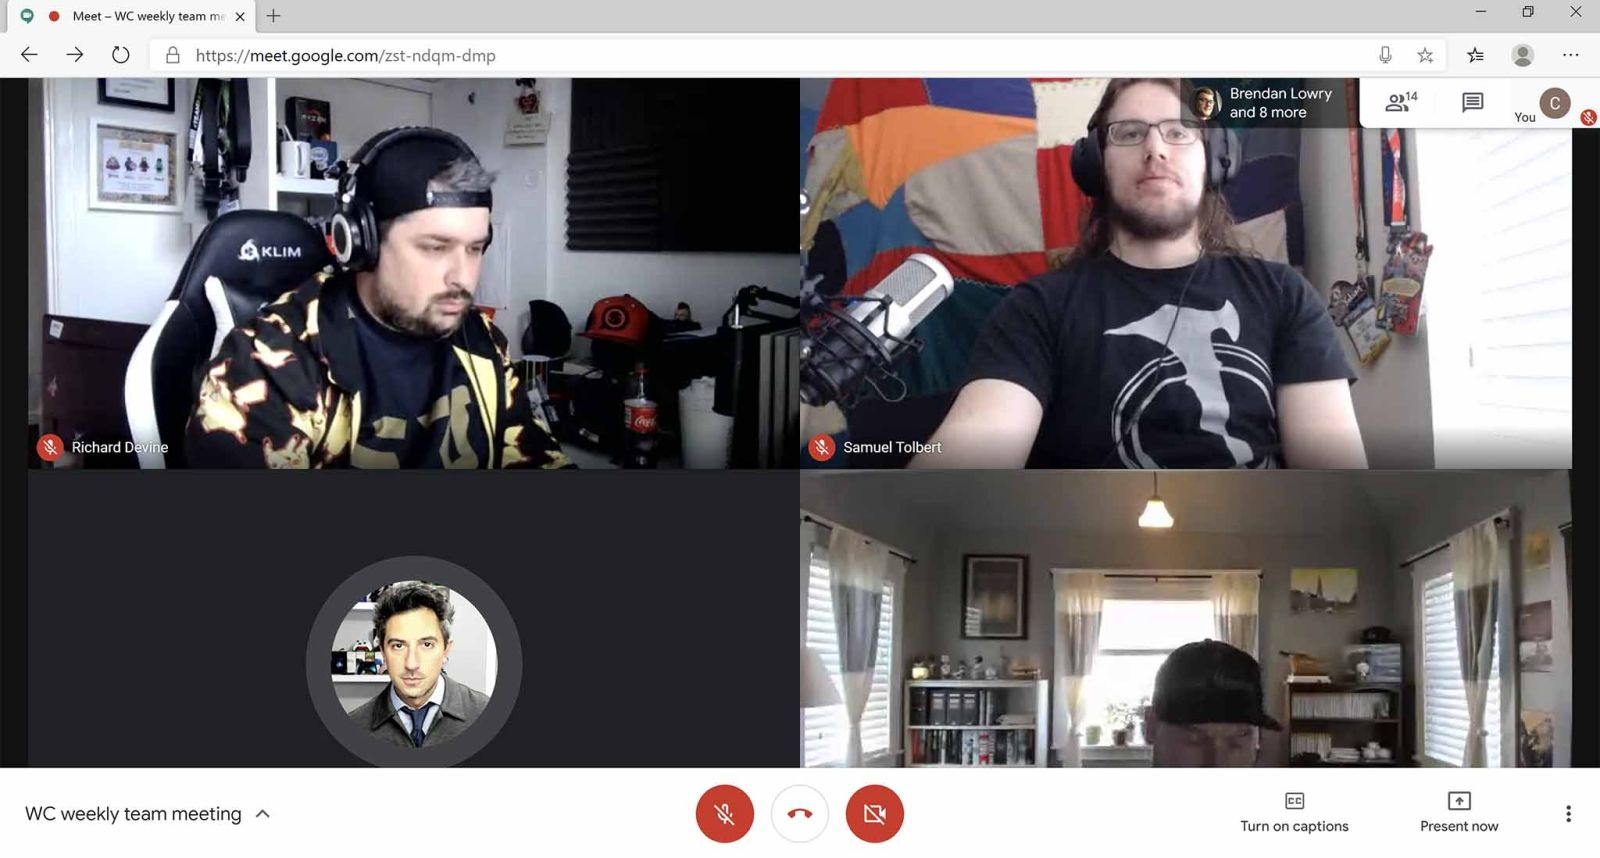 Google Hangouts Meet Getting Started Joining Calls